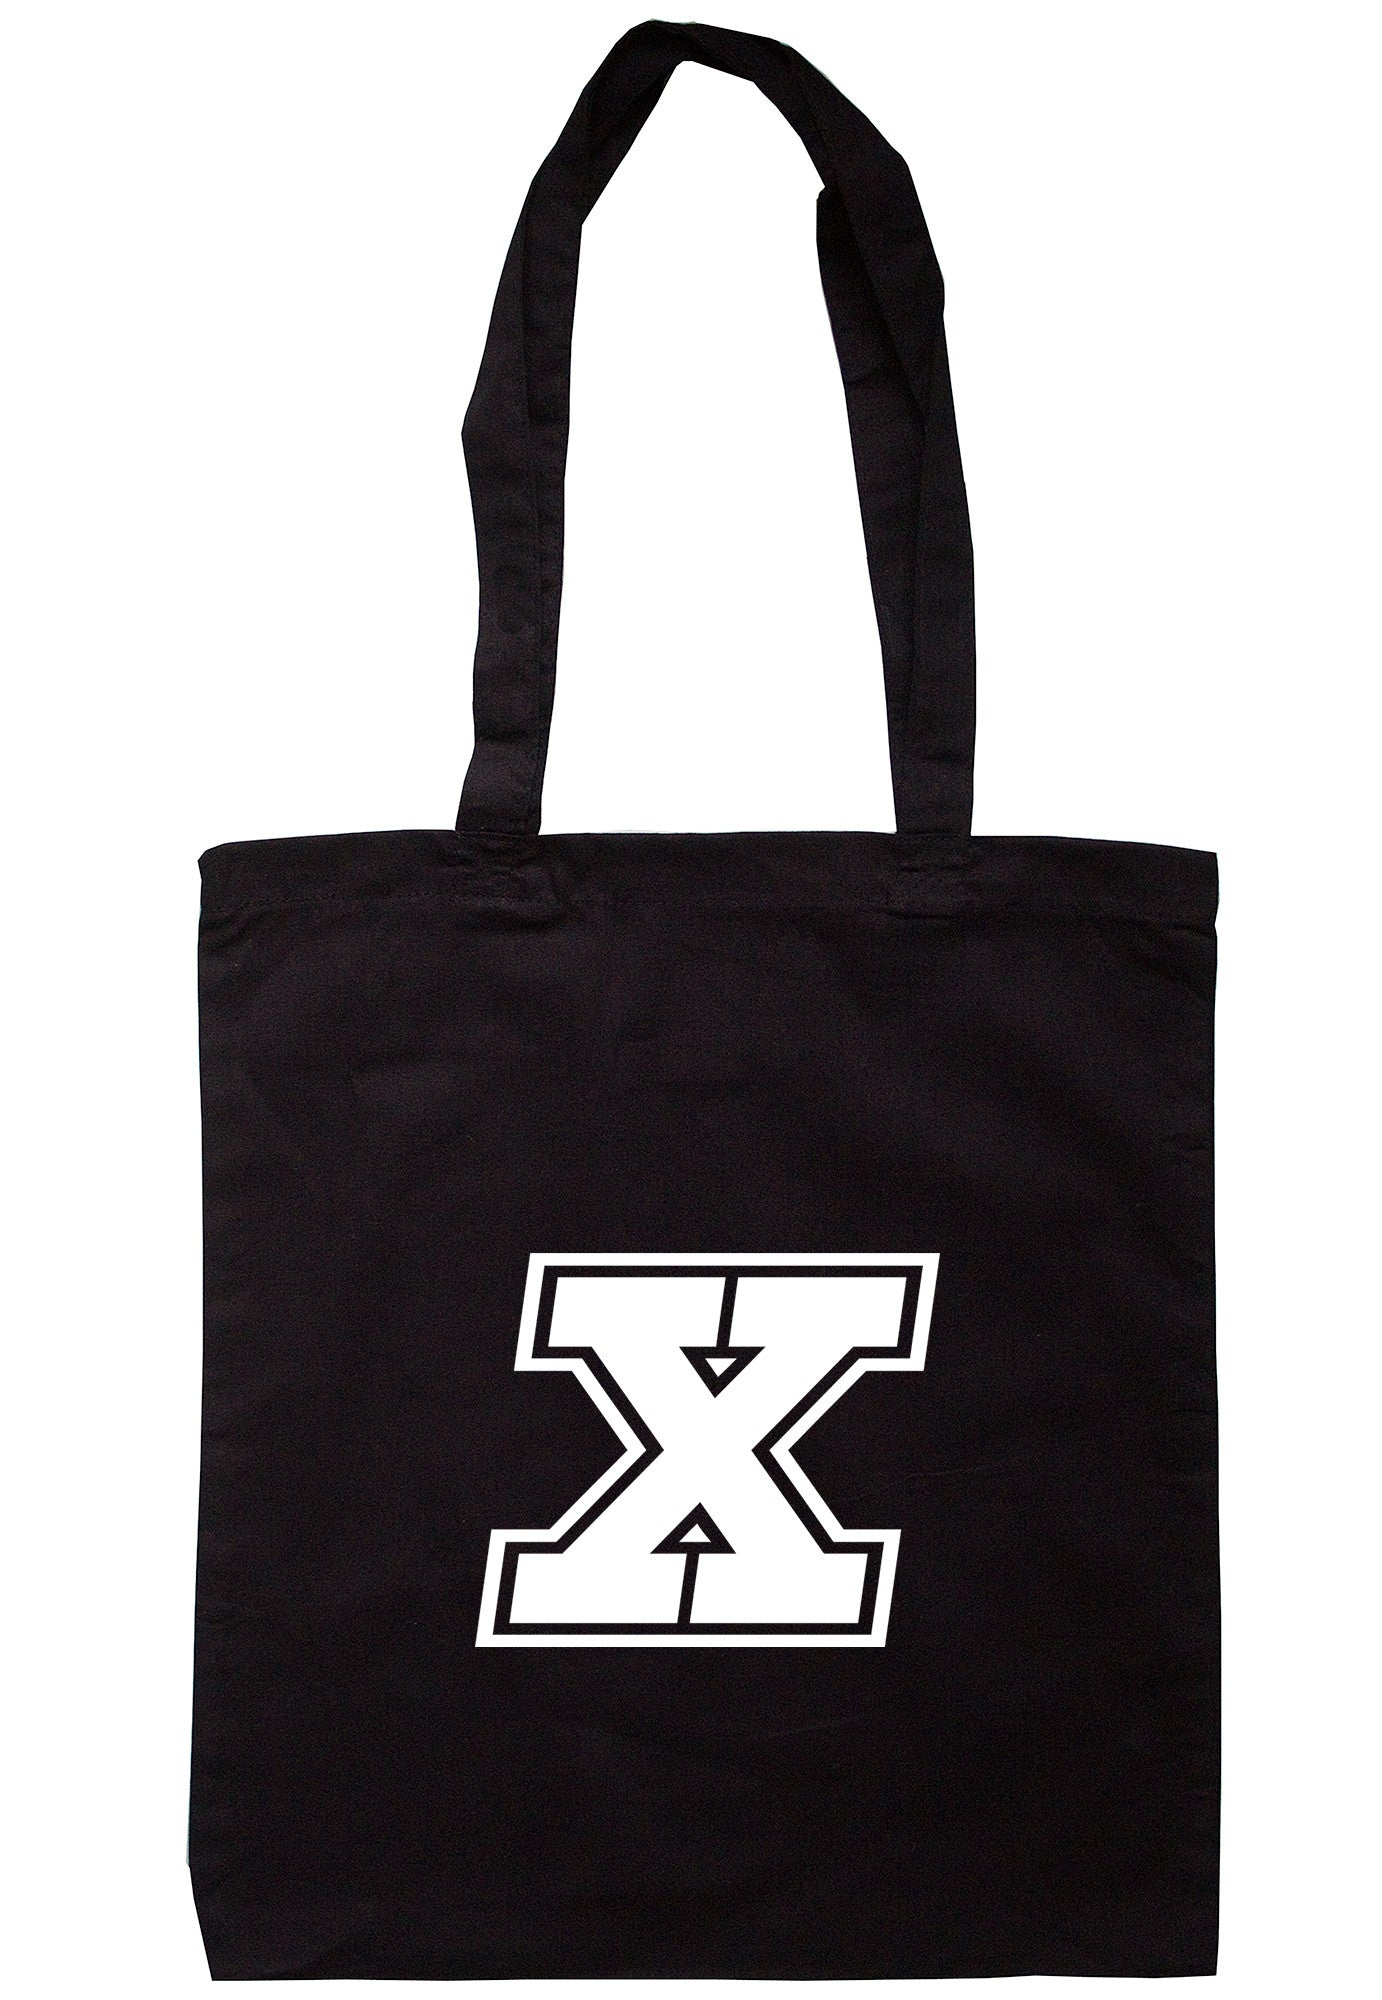 Letter 'X' Initial Tote Bag TB0734 - Illustrated Identity Ltd.